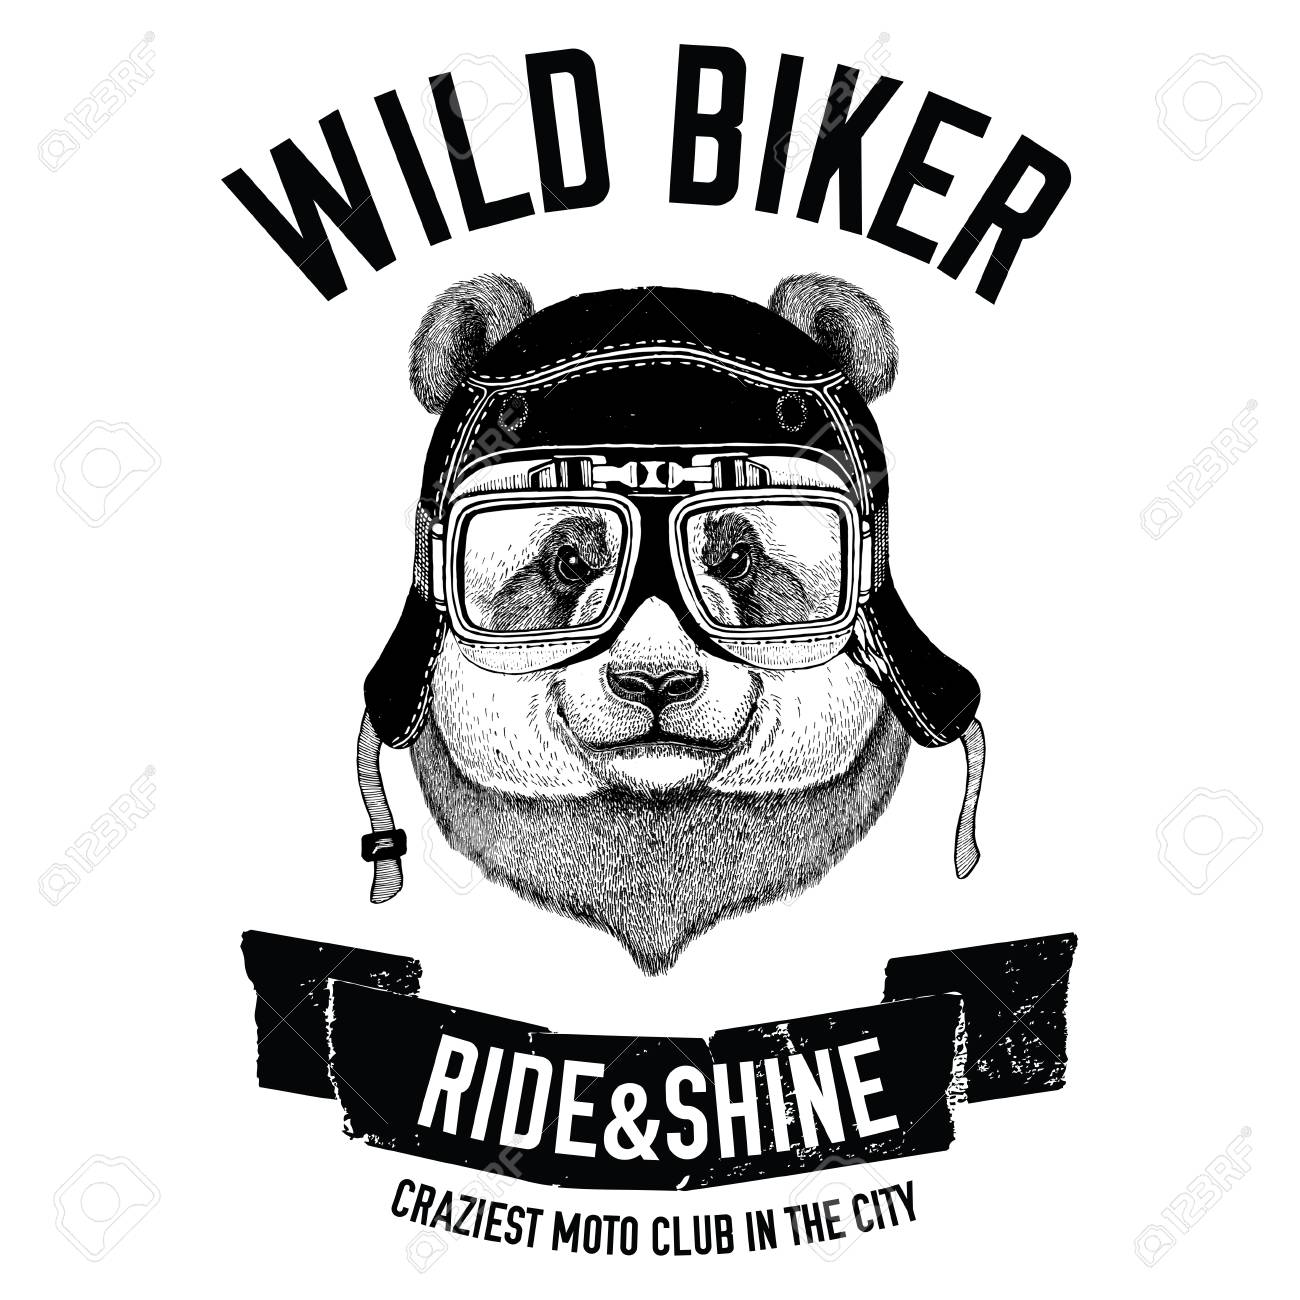 Vintage Images Of Panda Bear For T Shirt Design For Motorcycle